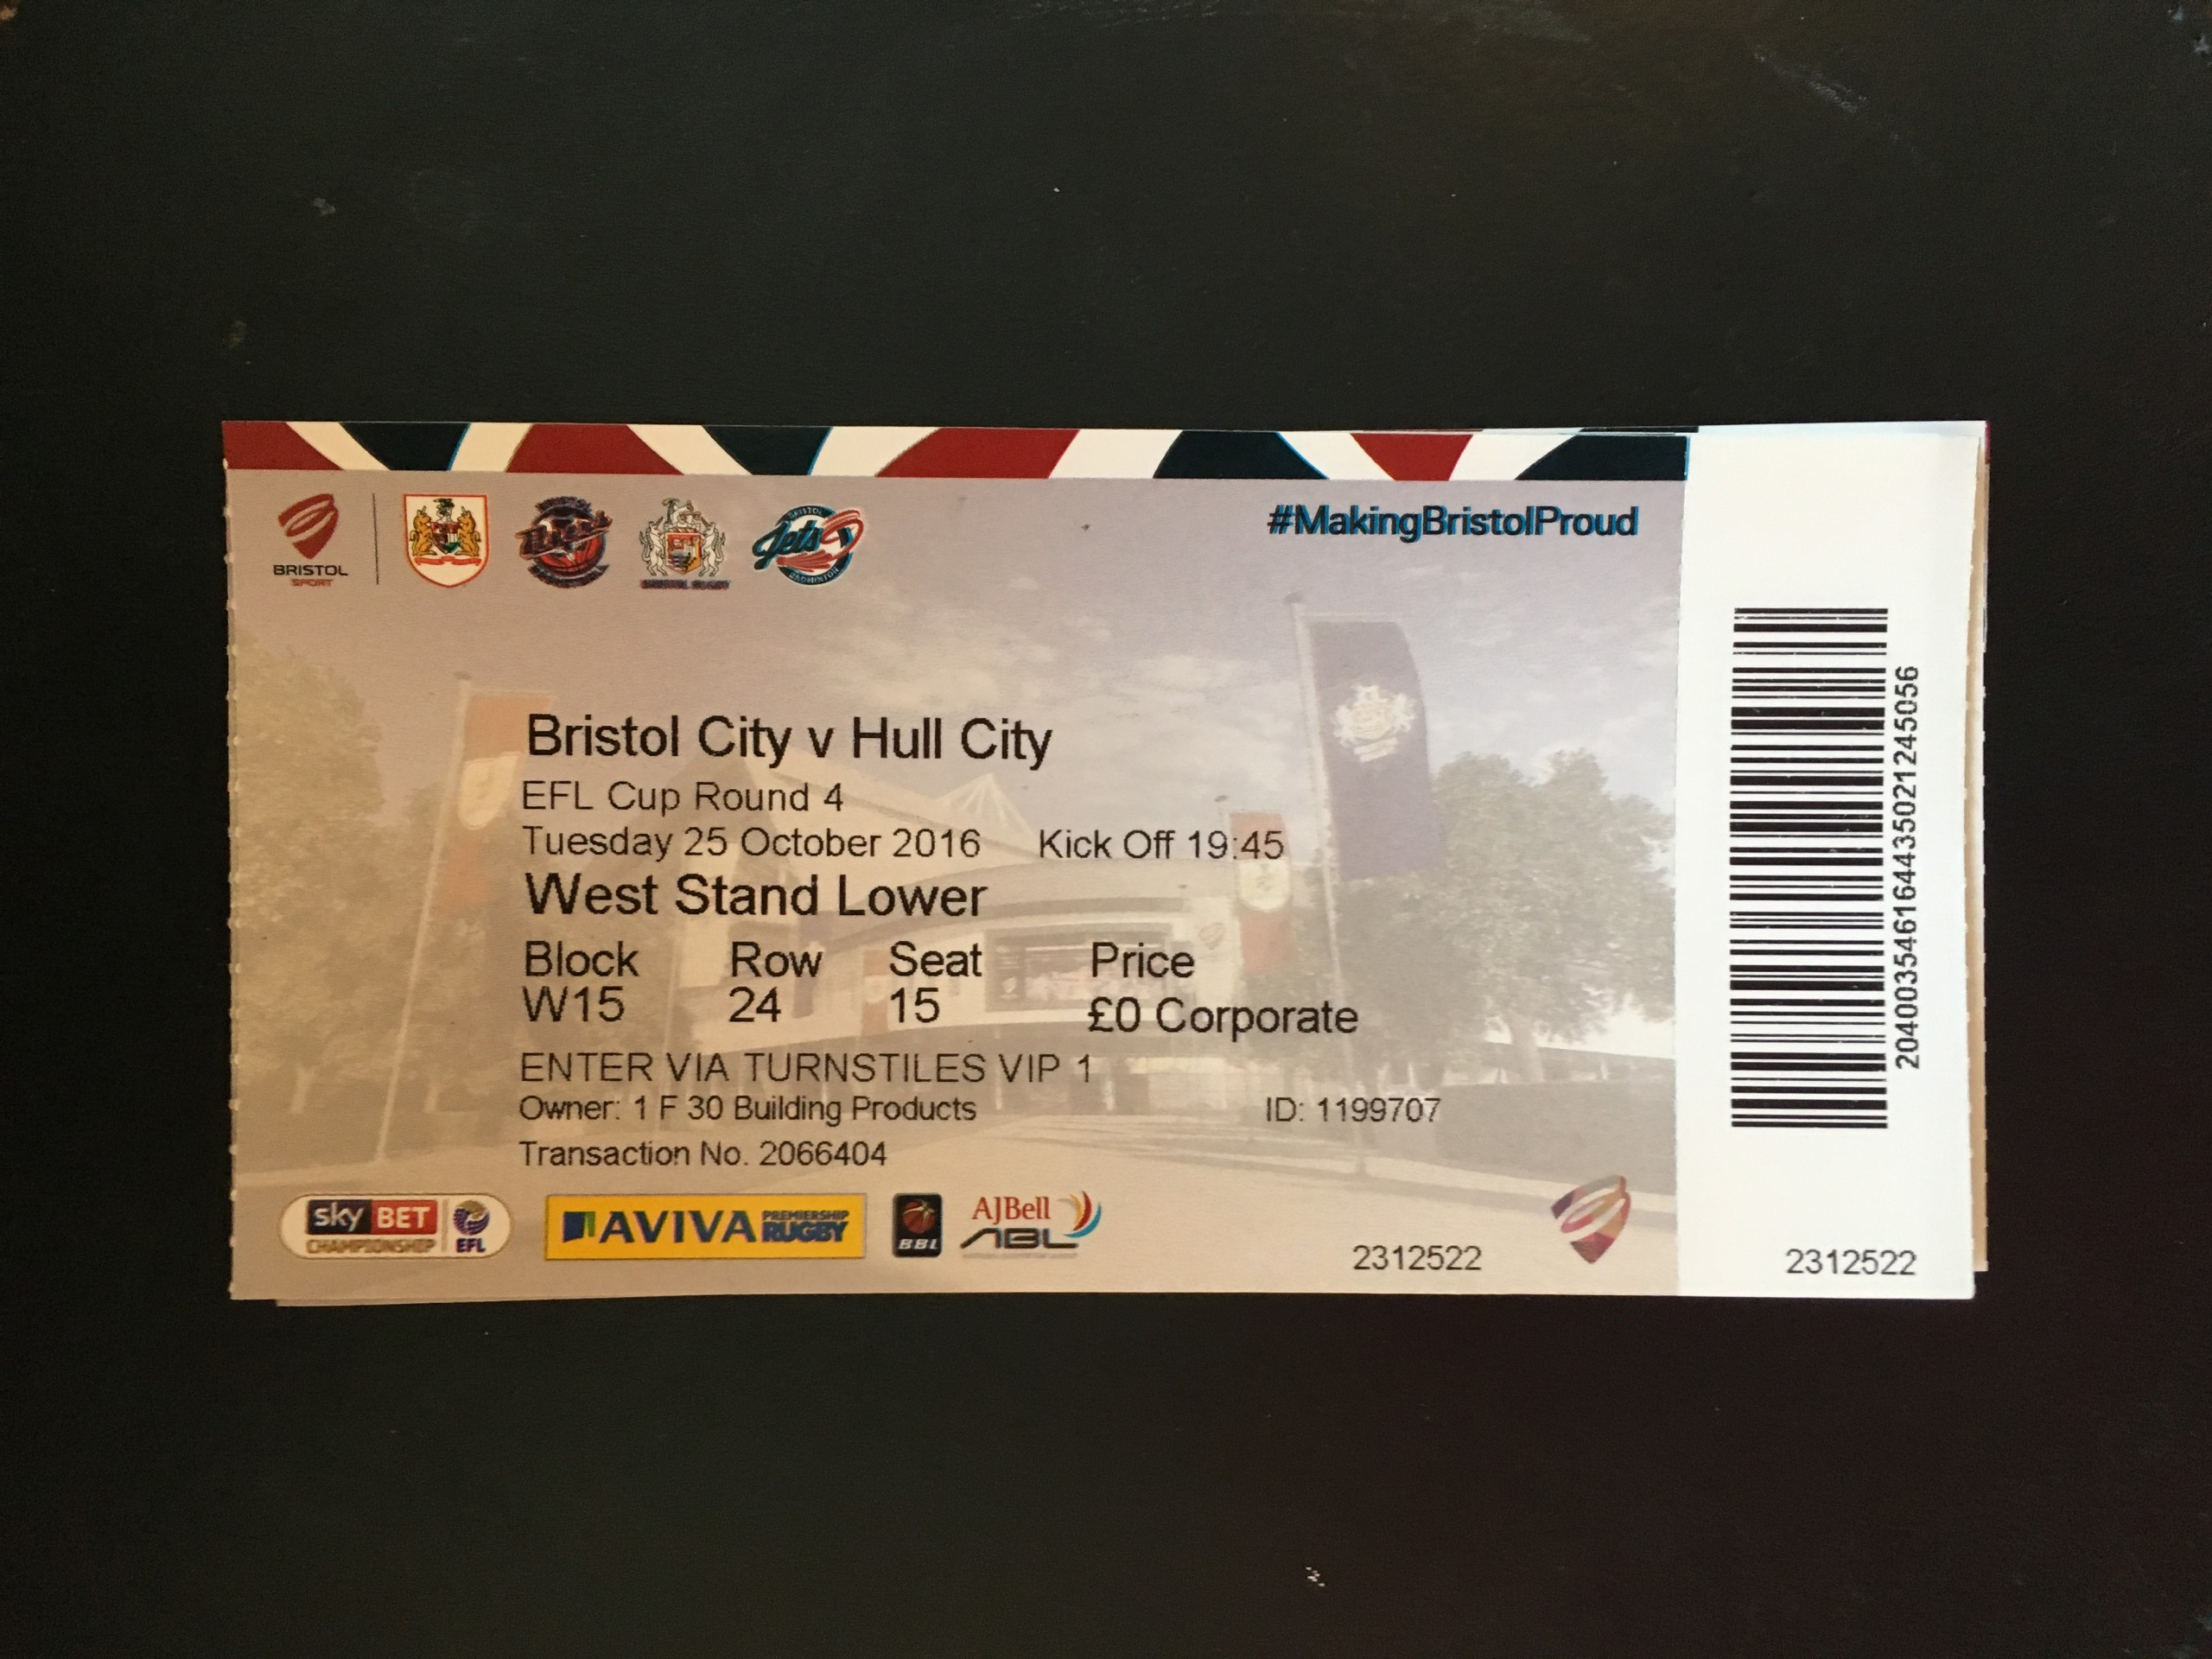 Bristol City v Hull City 25-10-2016 Ticket